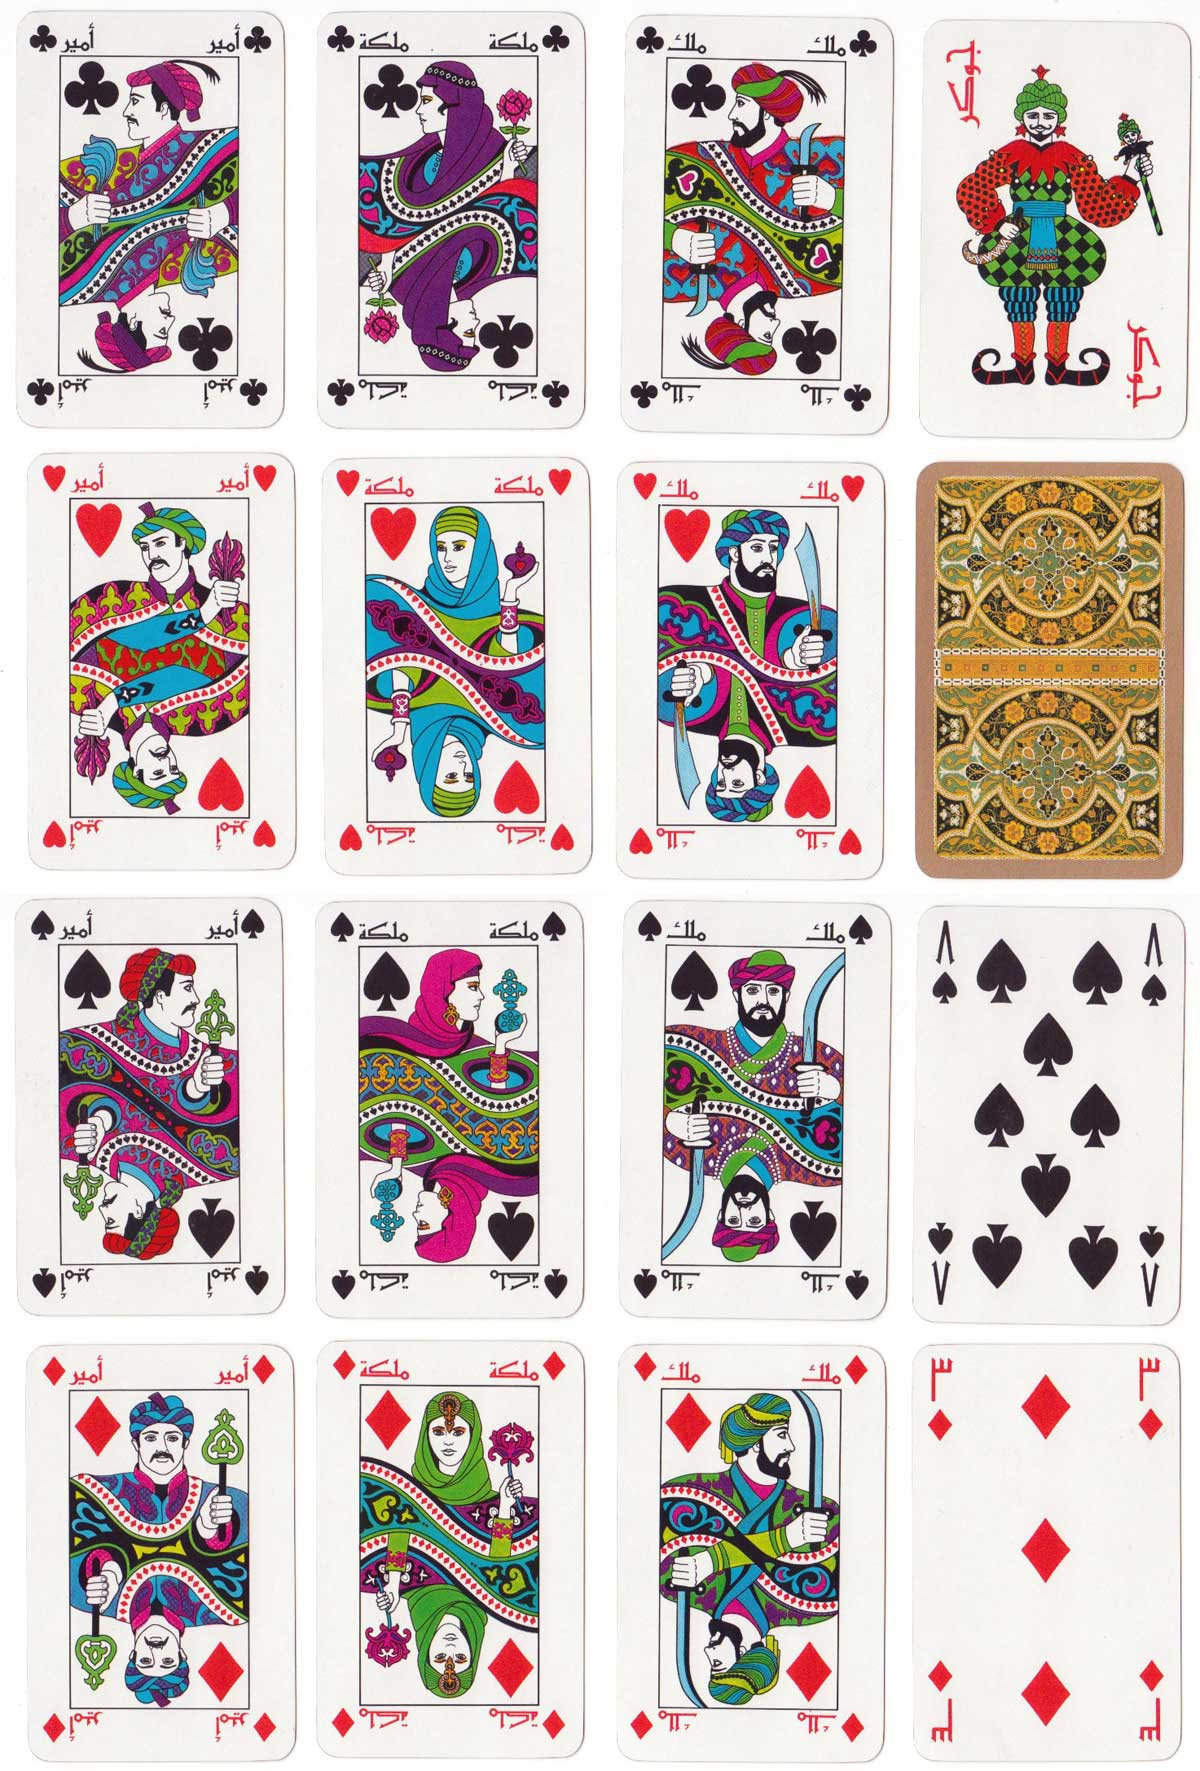 Arabic playing cards designed by Evy Maros & Mourad Boutros, c.1990